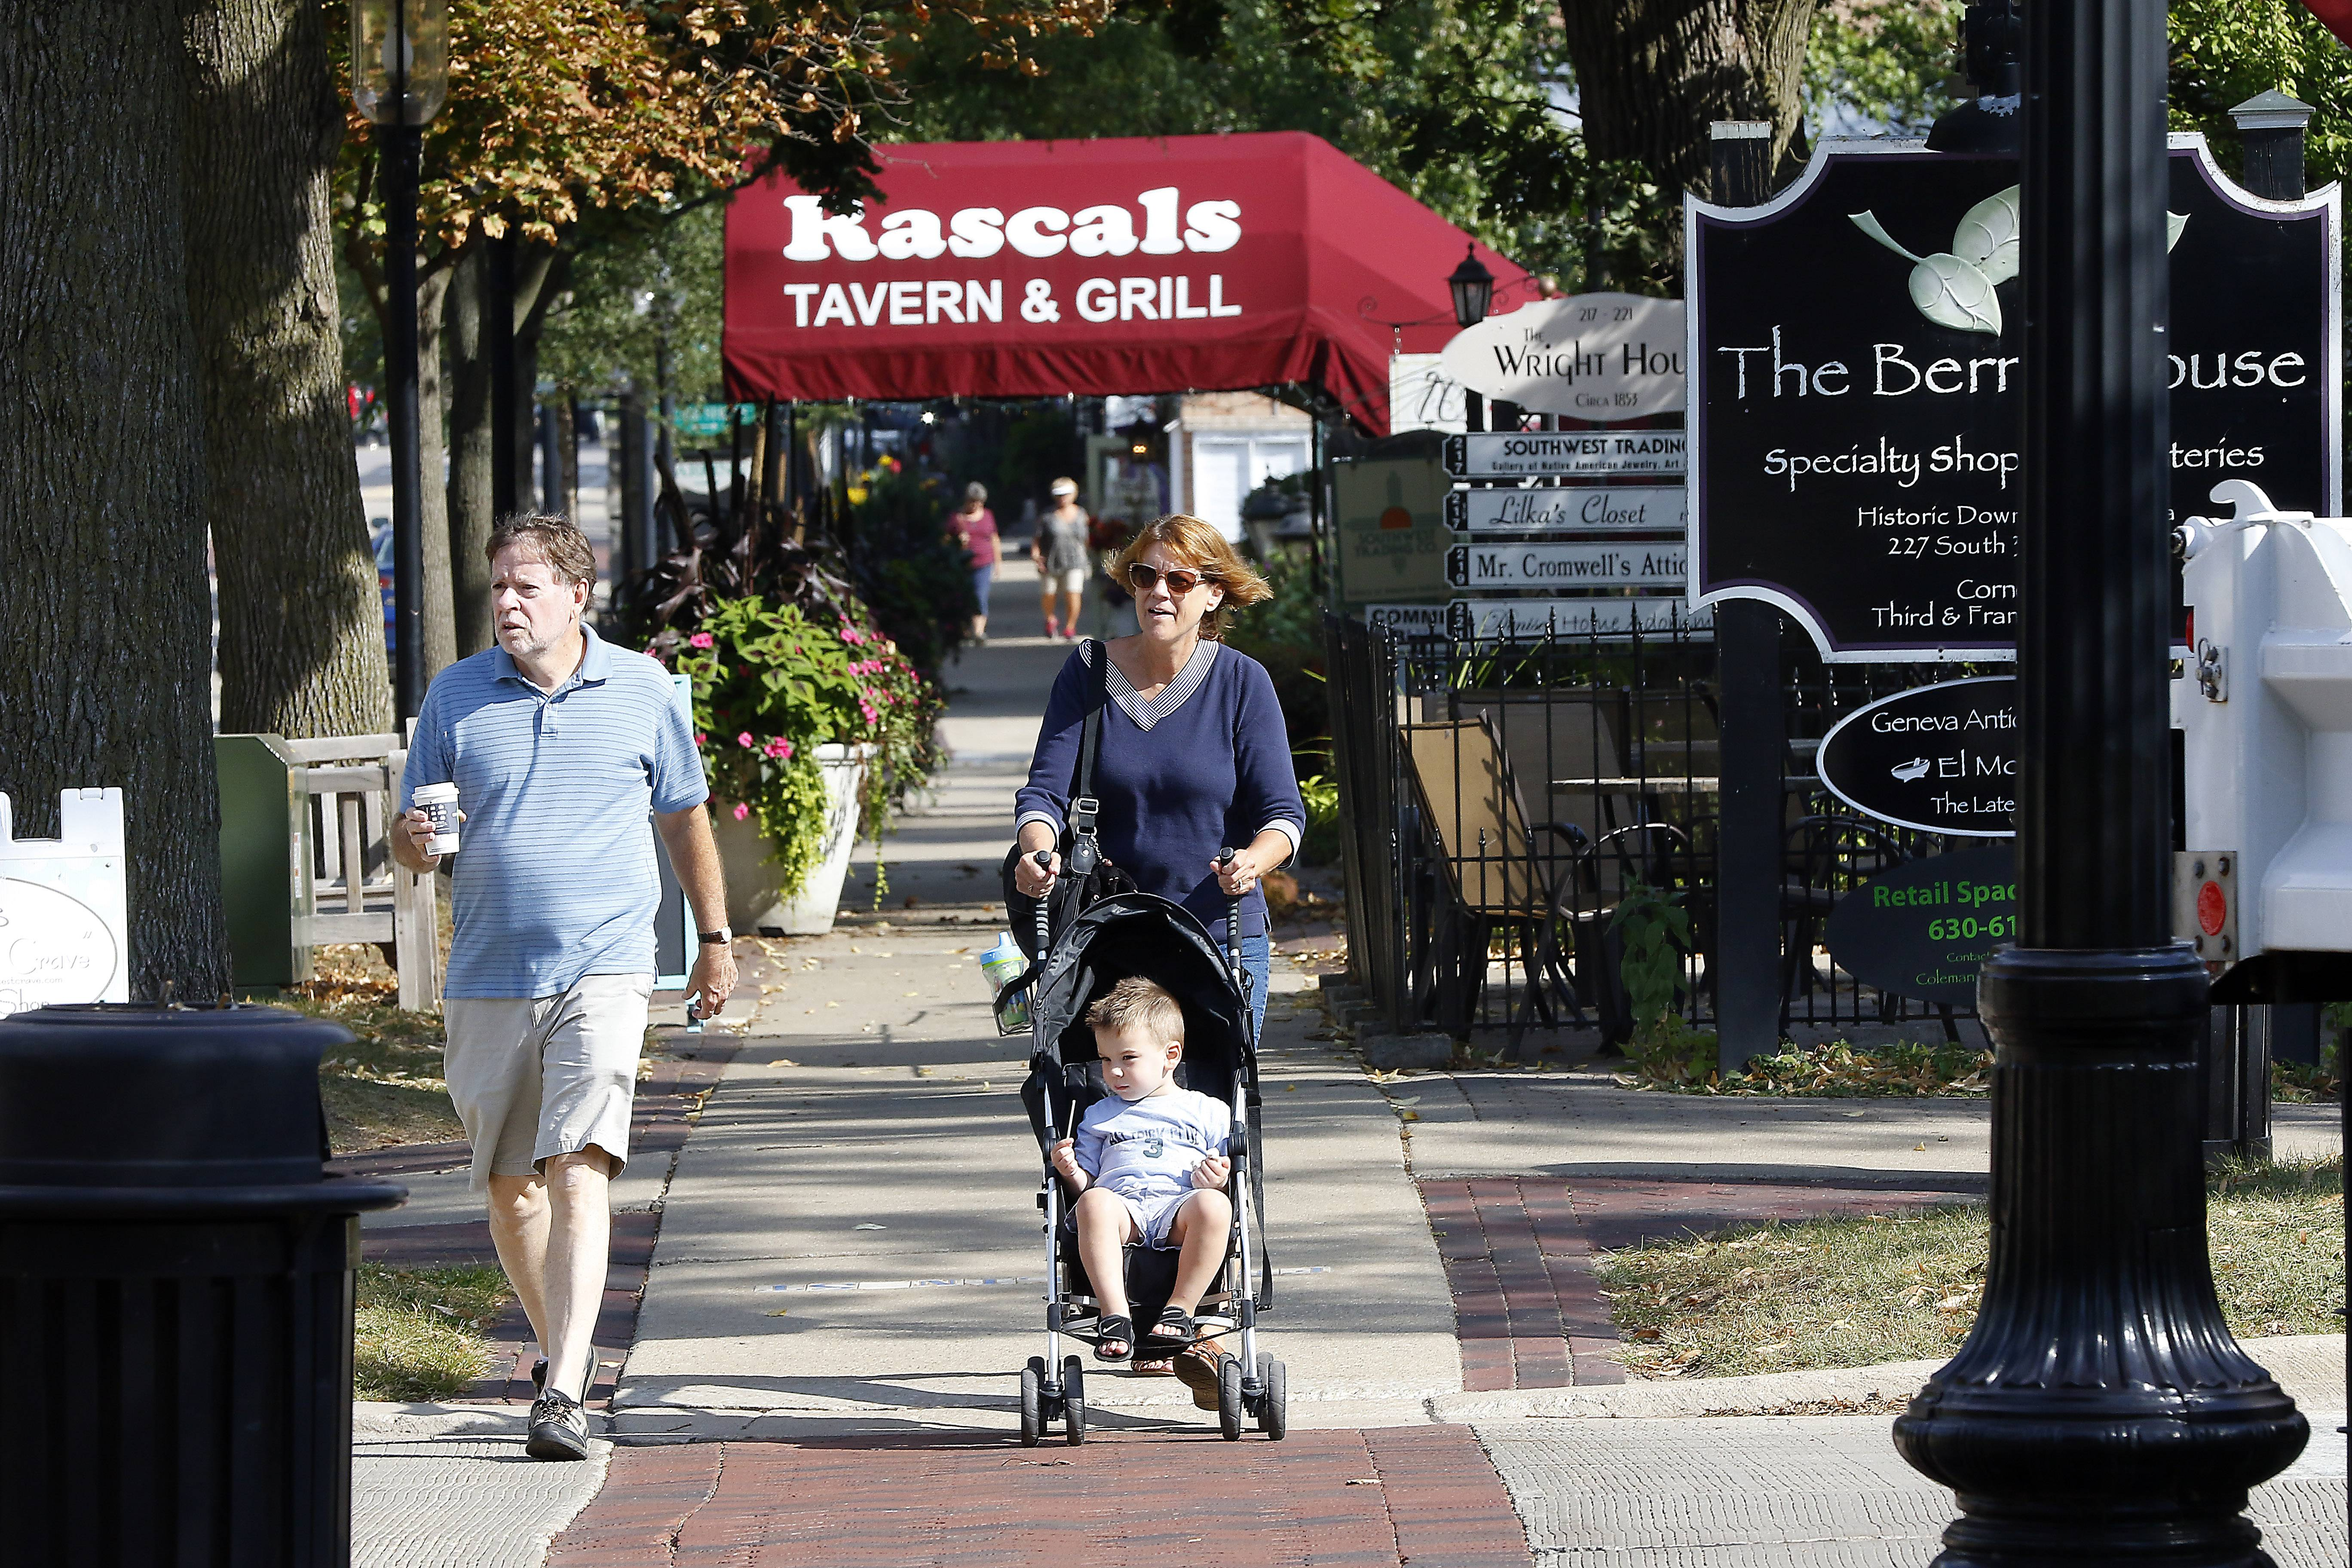 Genevans to vote on sales tax increase, with specter of dining tax